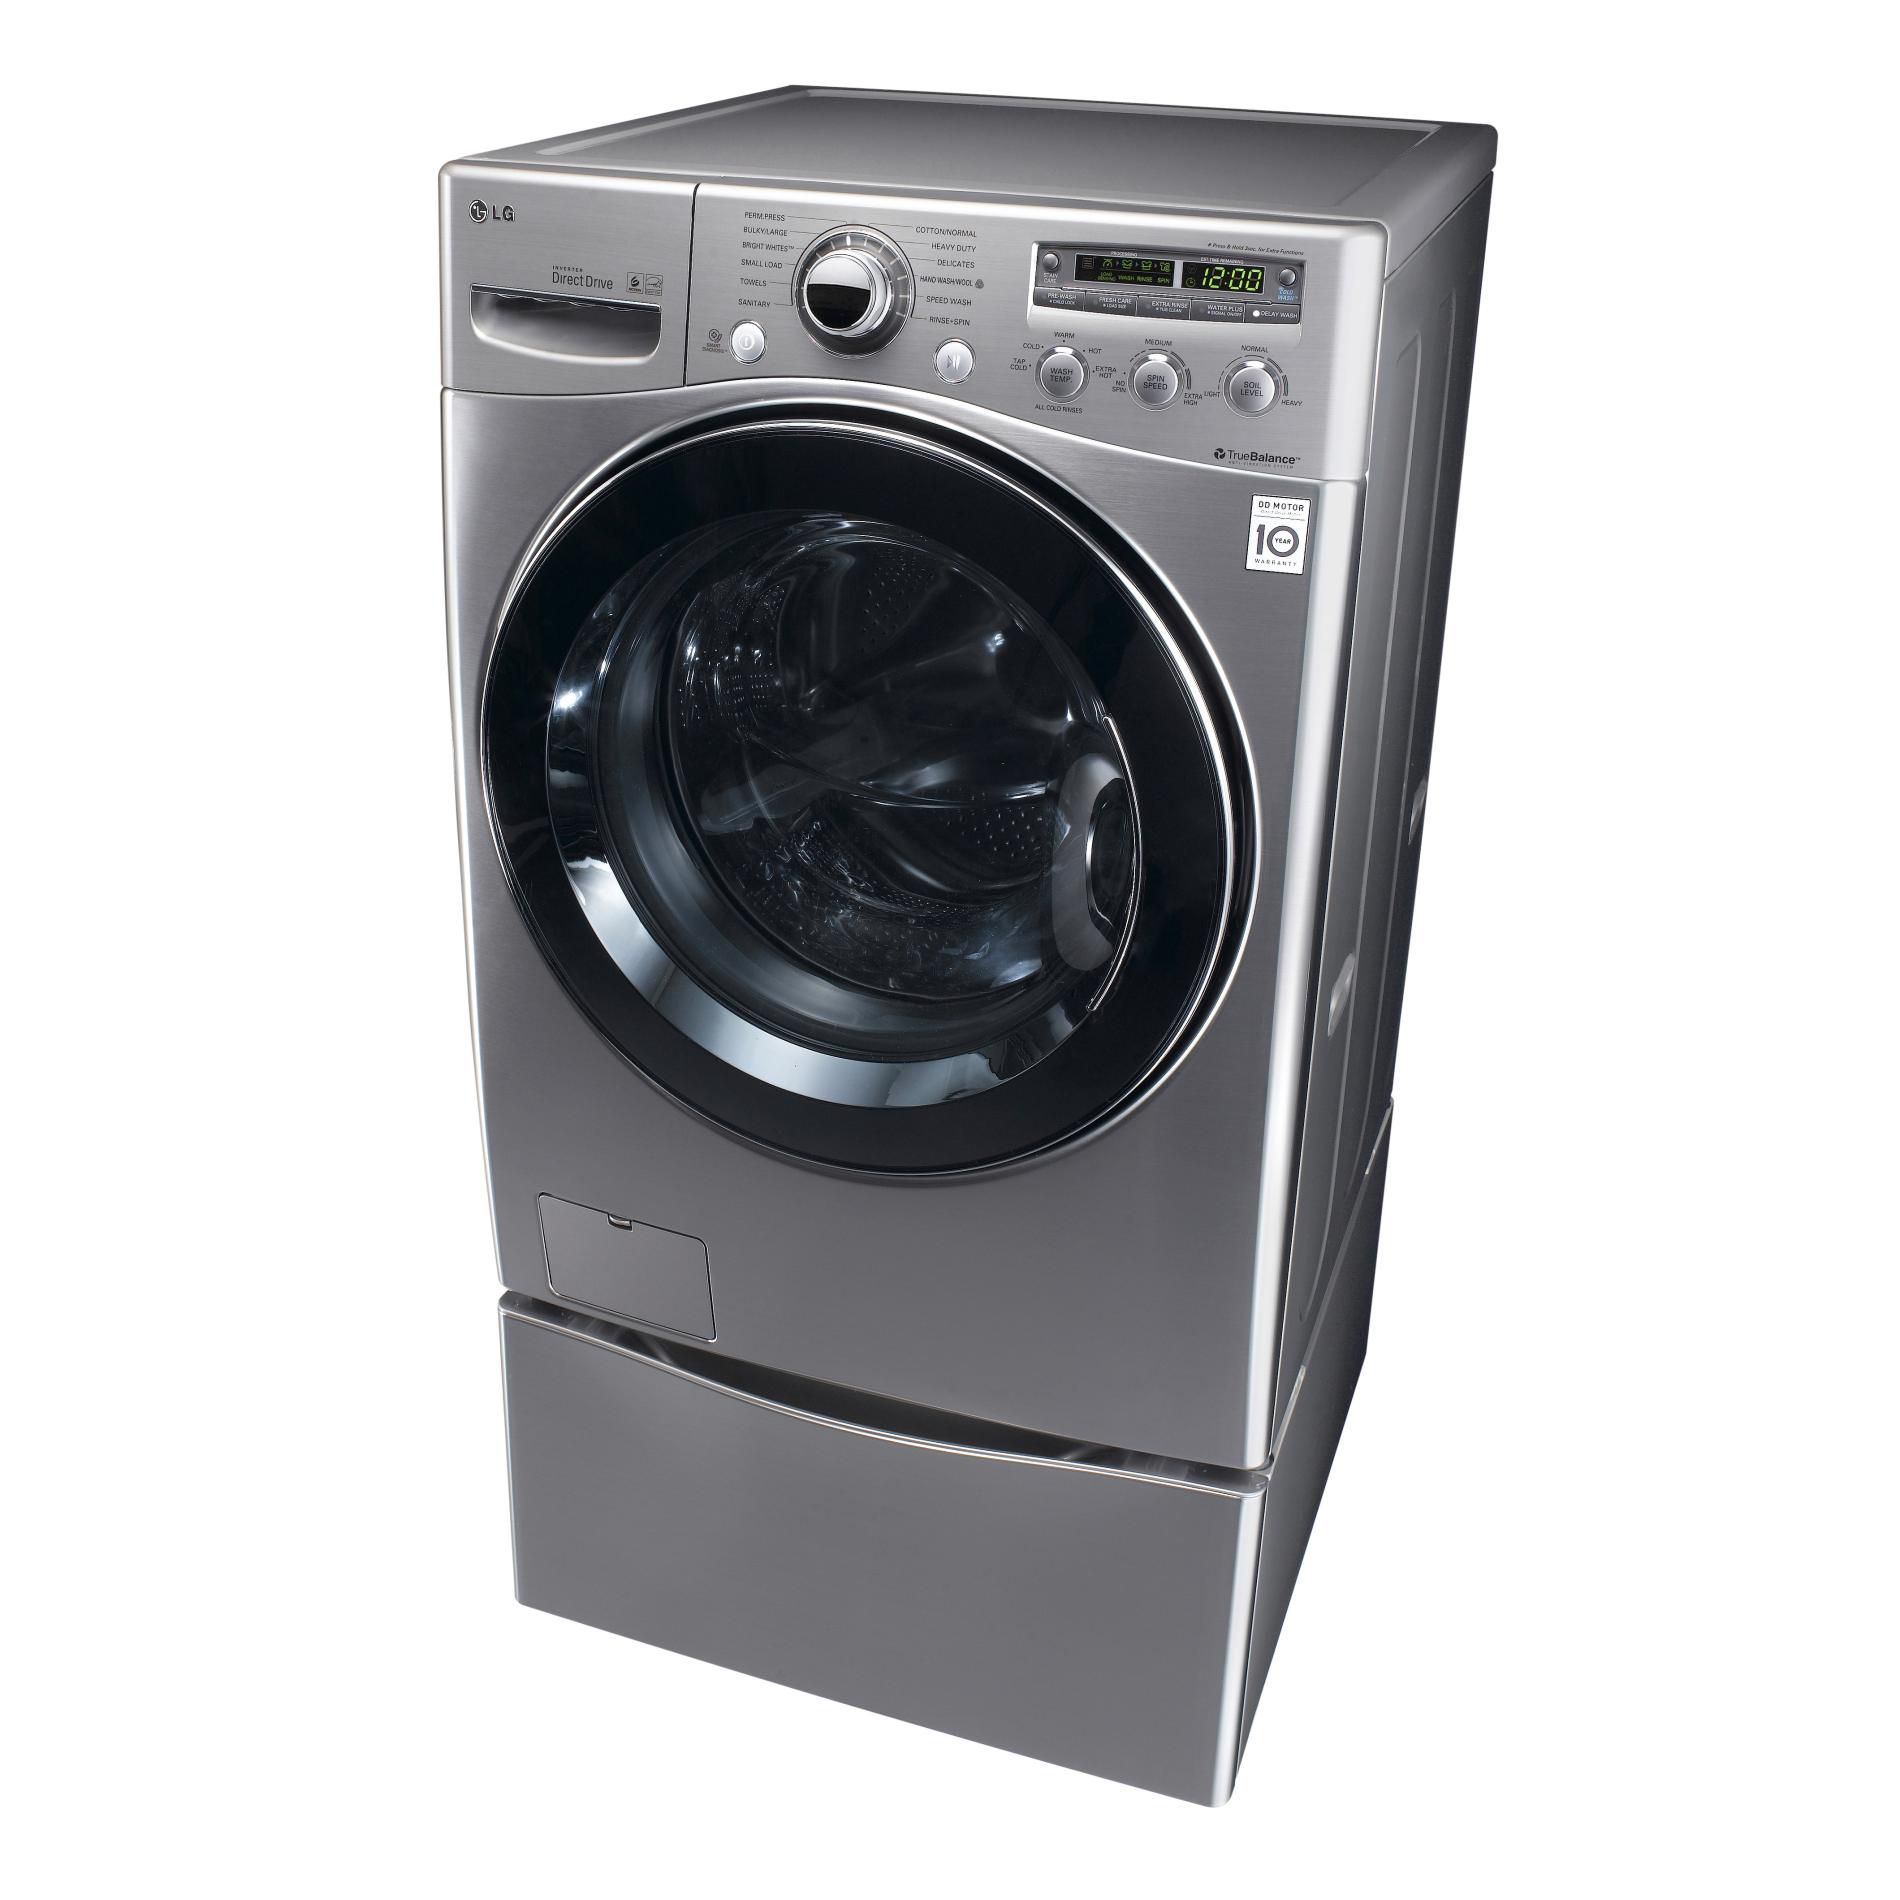 LG 4.3 cu. ft. Ultra-Large Capacity Front-Load Washer w/ ColdWash™ Technology - Graphite Steel